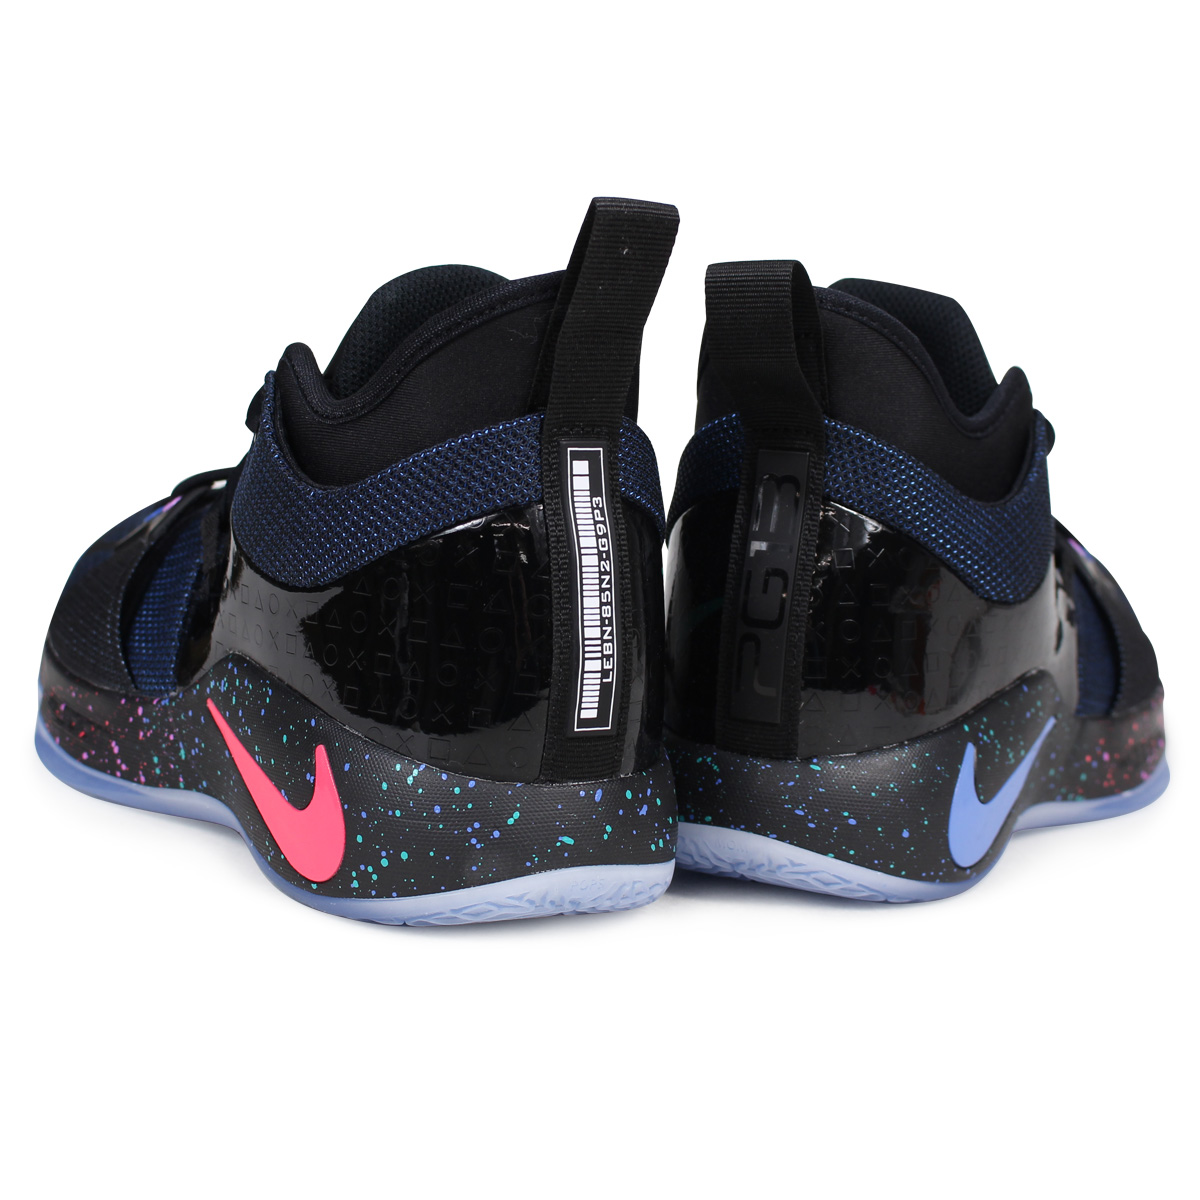 70cc299d257b1b NIKE PG 2 EP PLAYSTATION Nike PG2 sneakers men black AT7816-002  183